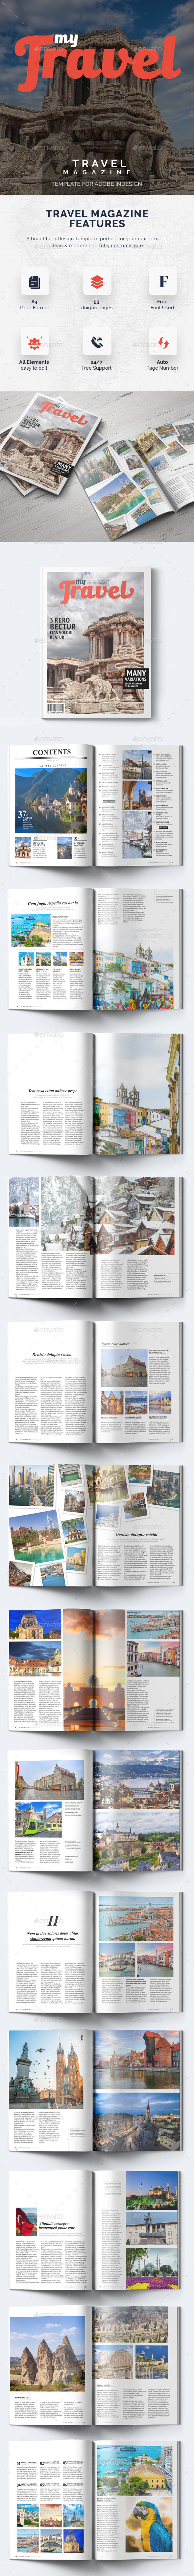 My Travel - 53 Pages Magazine Template - Magazines Print Templates